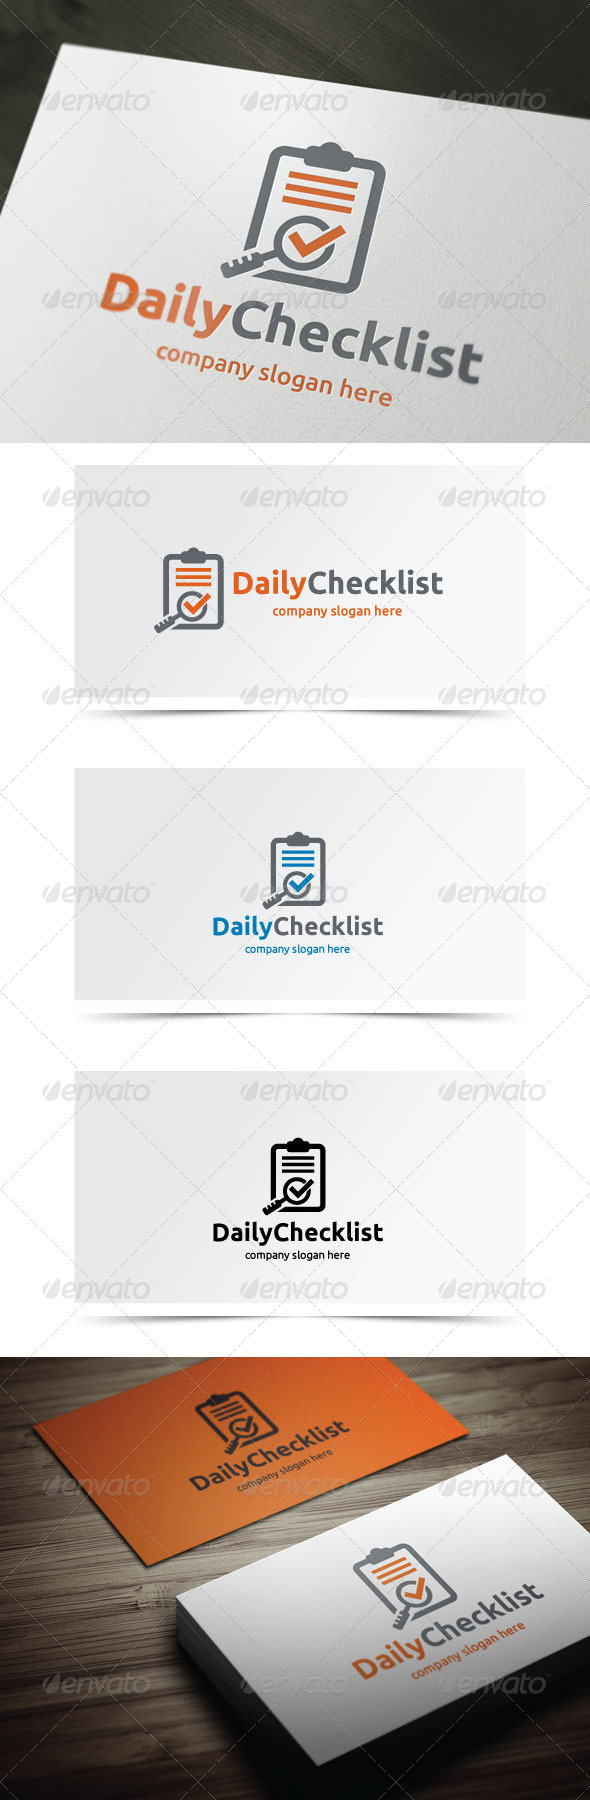 Daily Checklist - Symbols Logo Templates